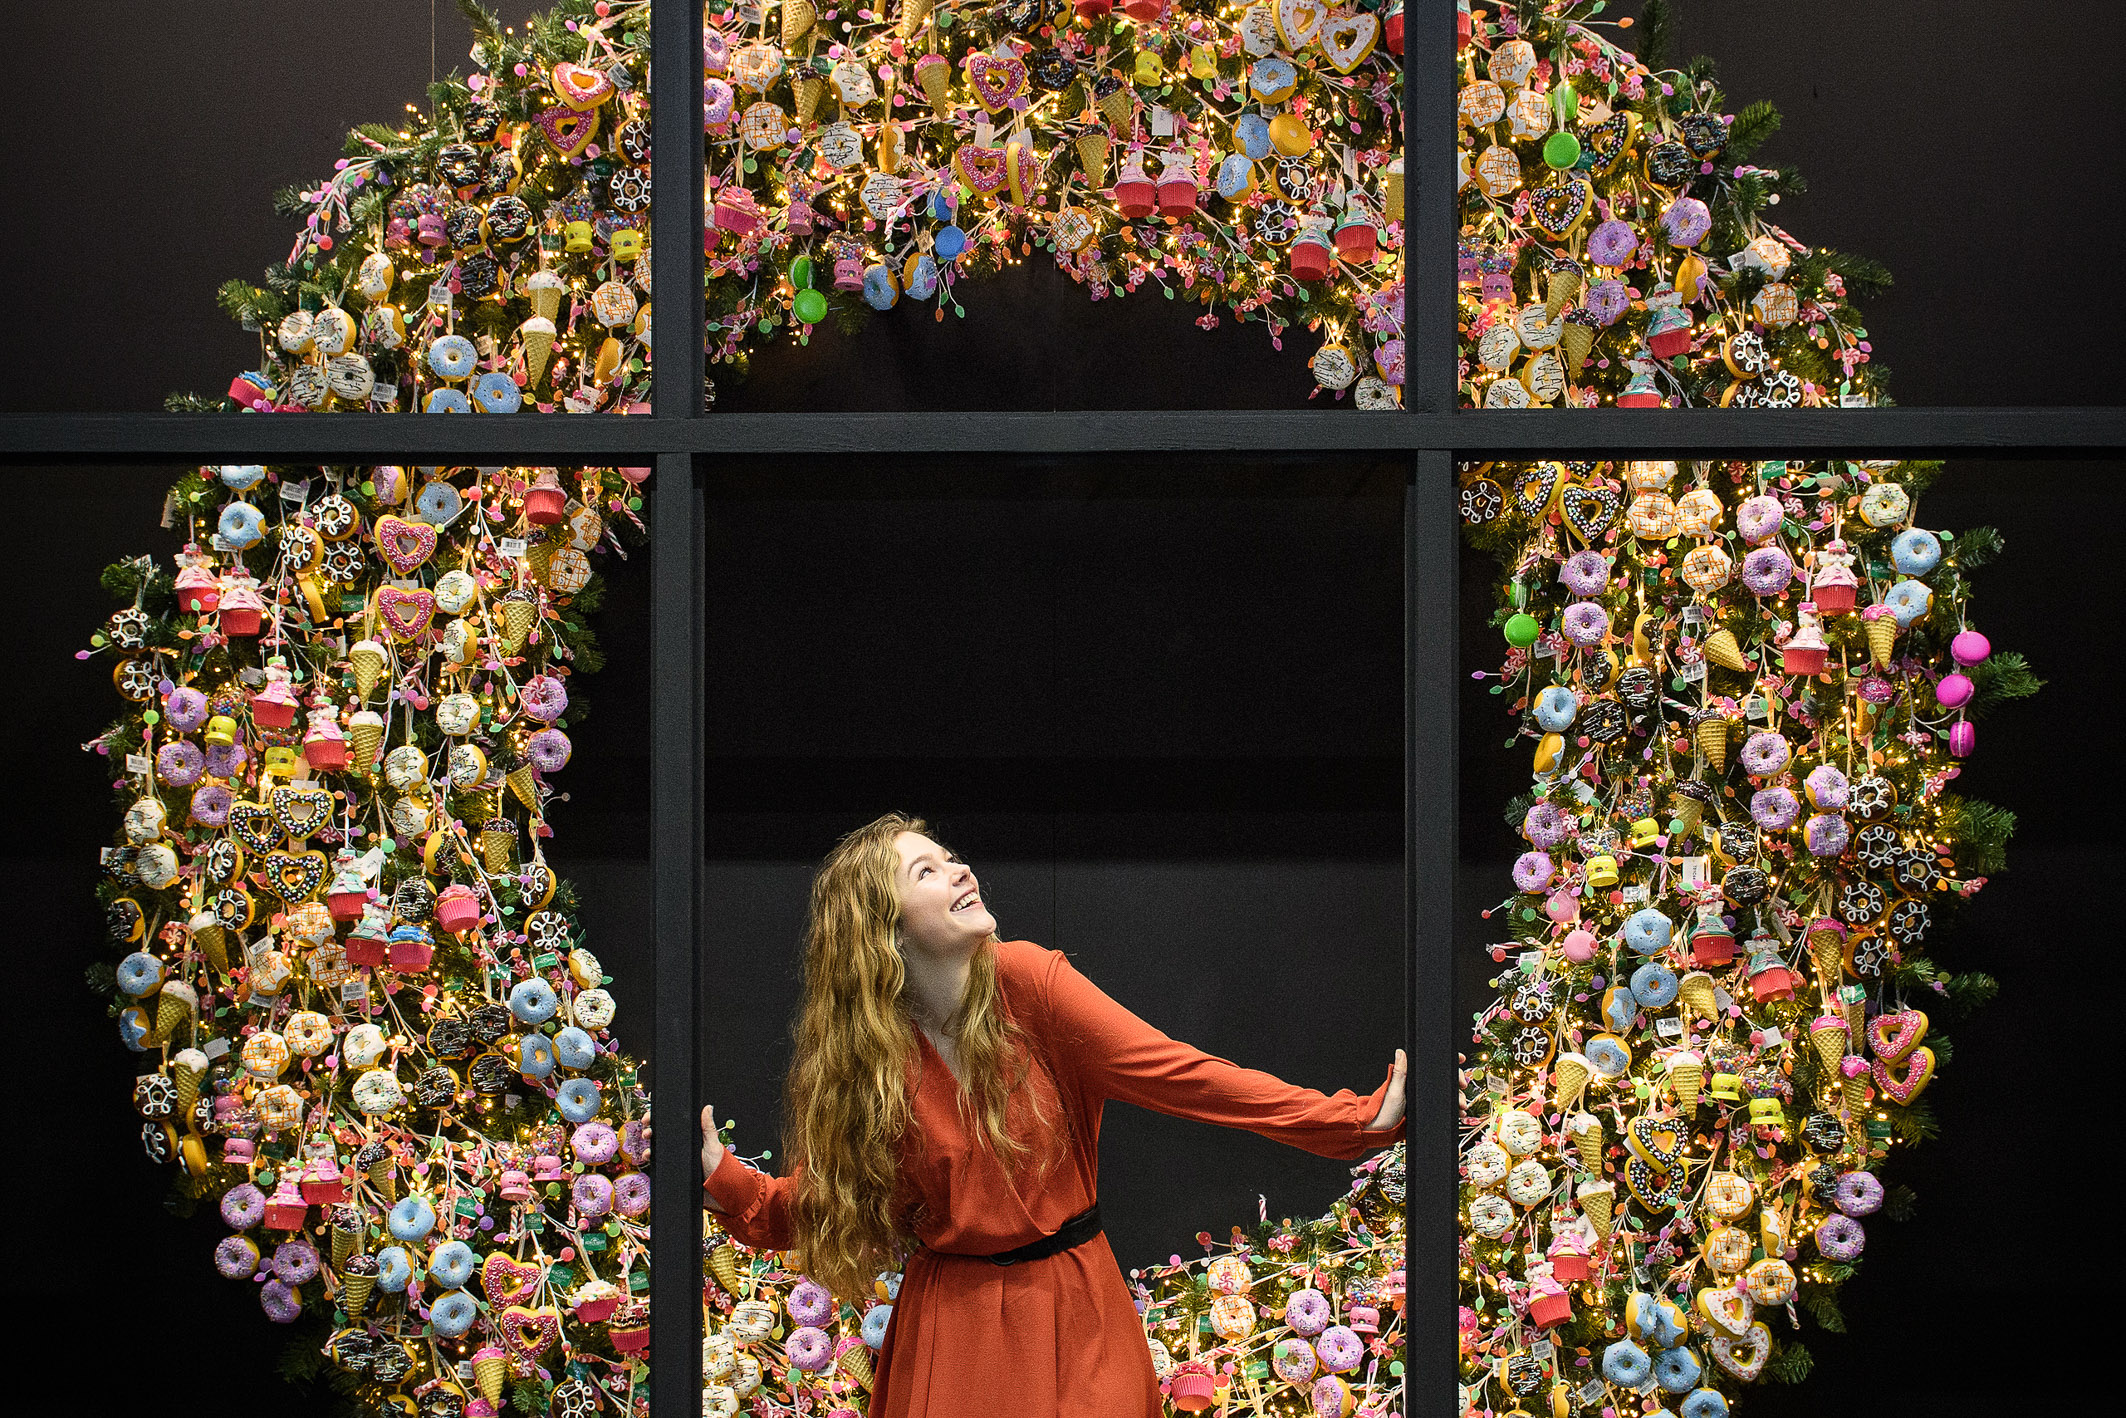 The most important trade shows around the world for florists